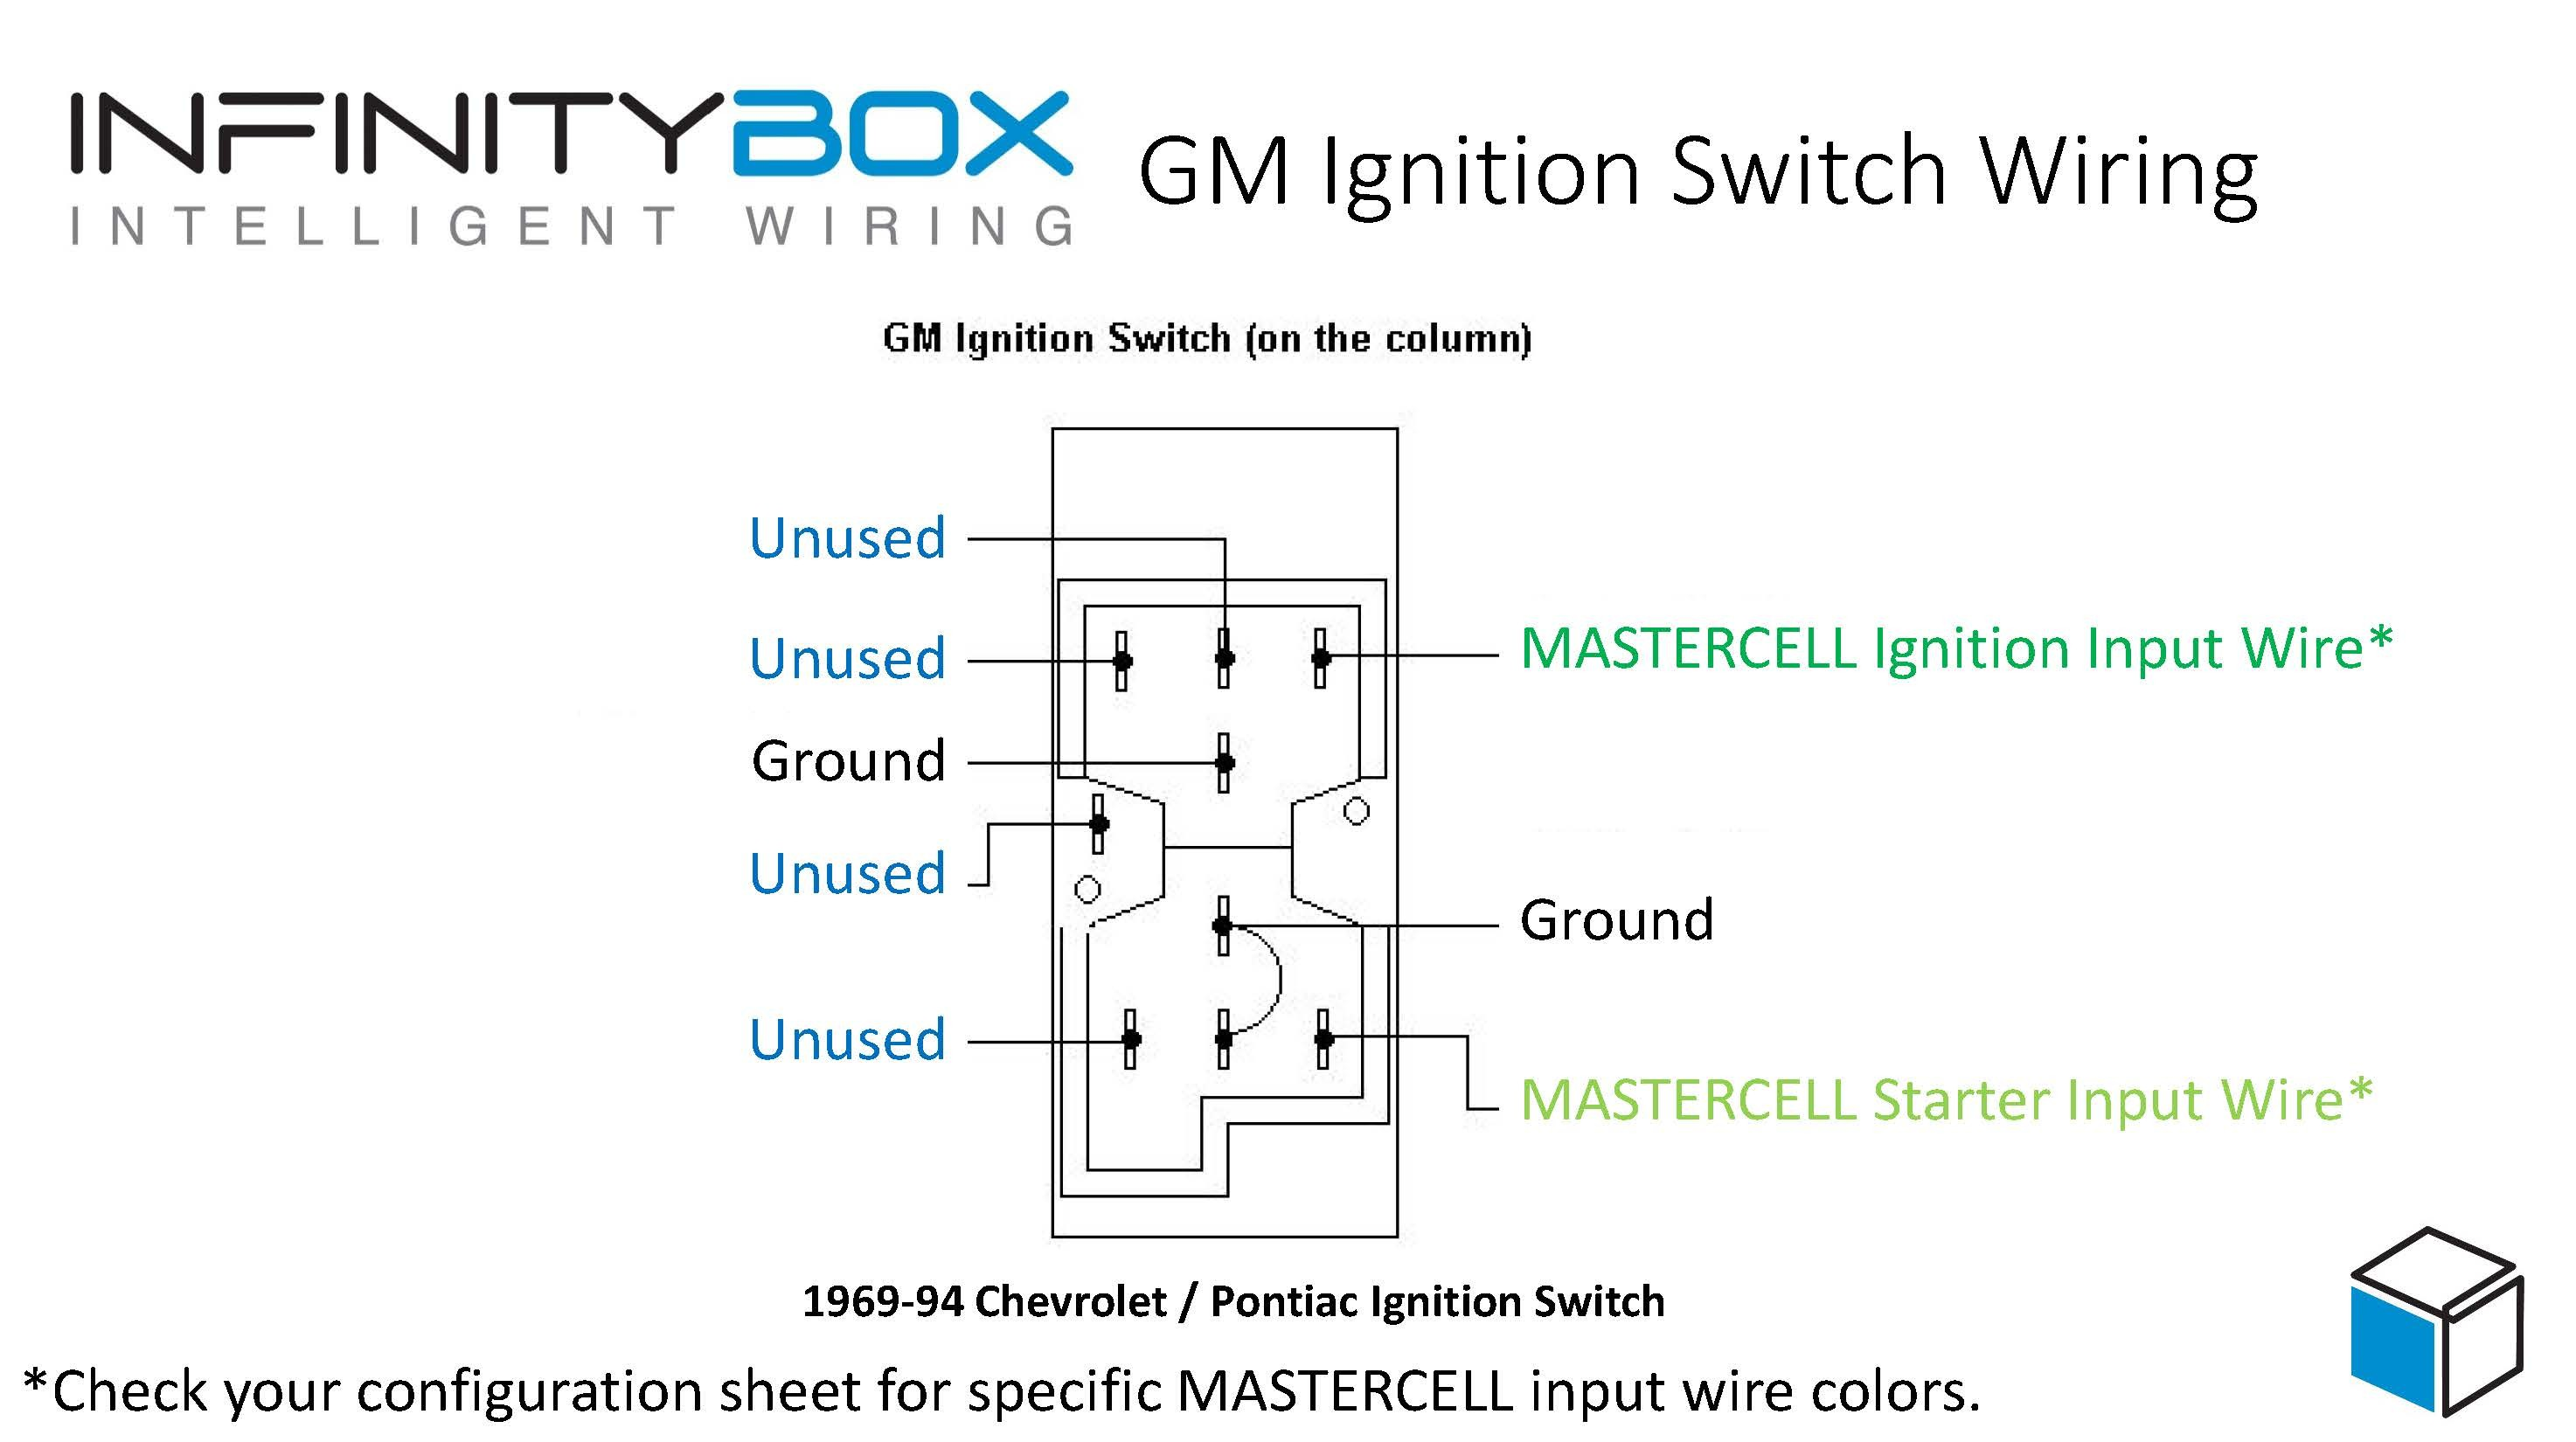 Ignition Switch Wiring Diagram Chevy Wiring Diagram Ignition Switch Chevy Free Extraordinary Blurts Of Ignition Switch Wiring Diagram Chevy